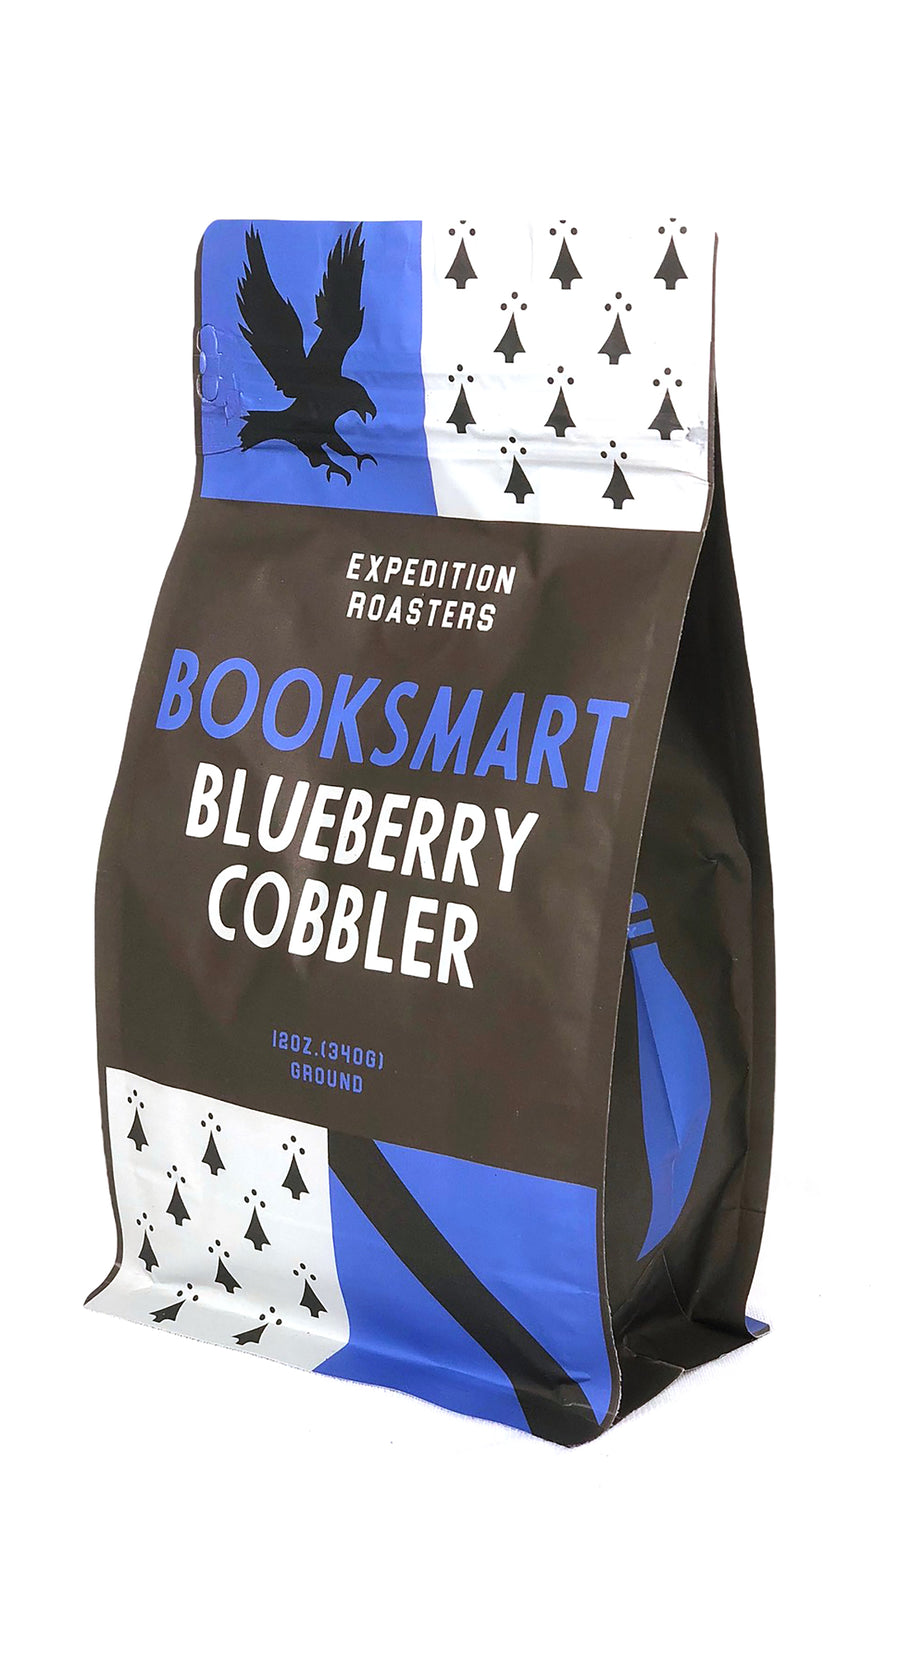 Booksmart Blueberry Cobbler